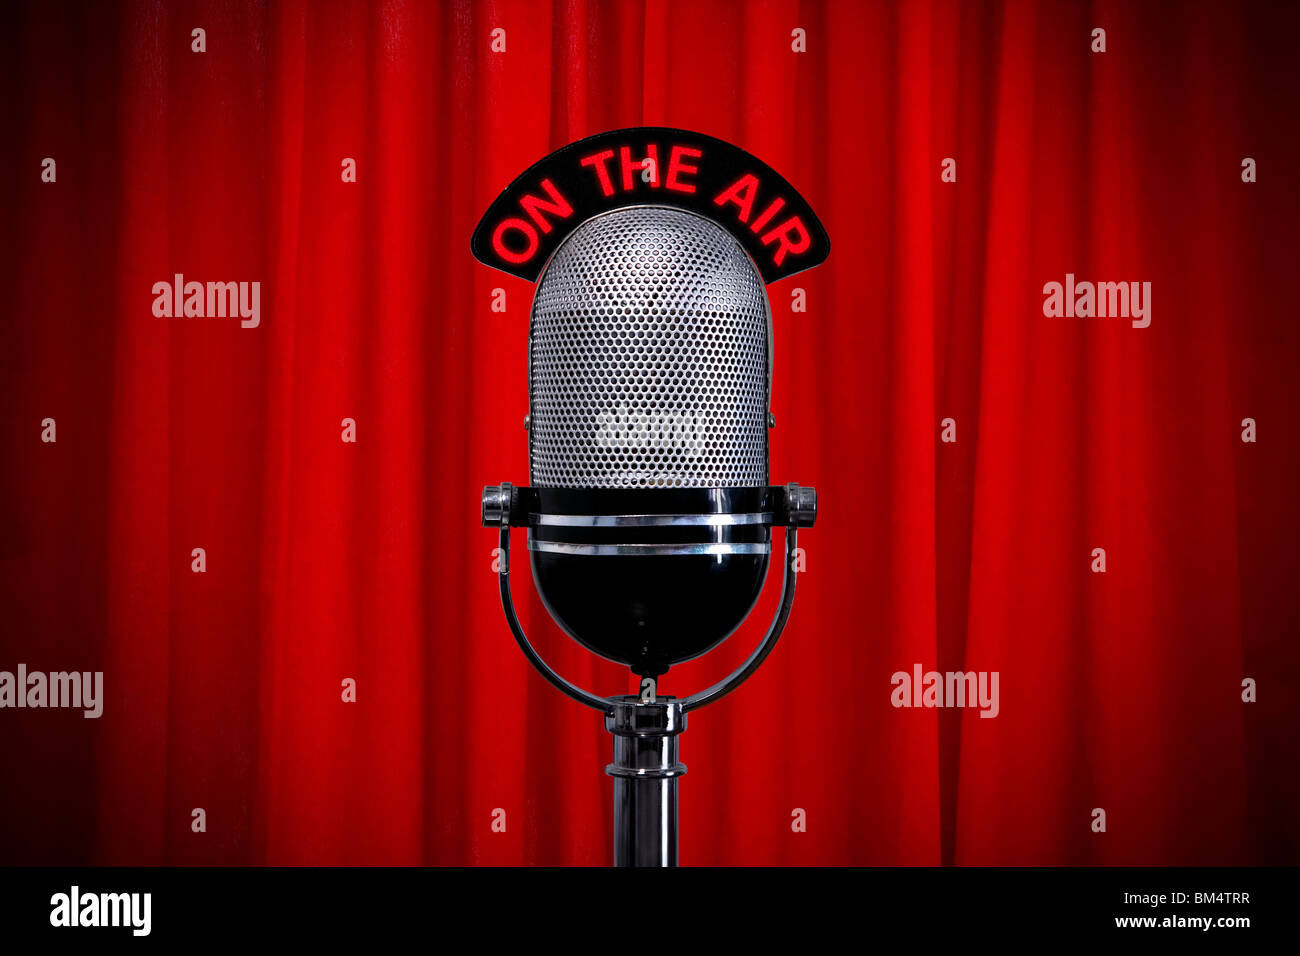 Retro microphone on stage against a red curtain with spotlight effect - Stock Image